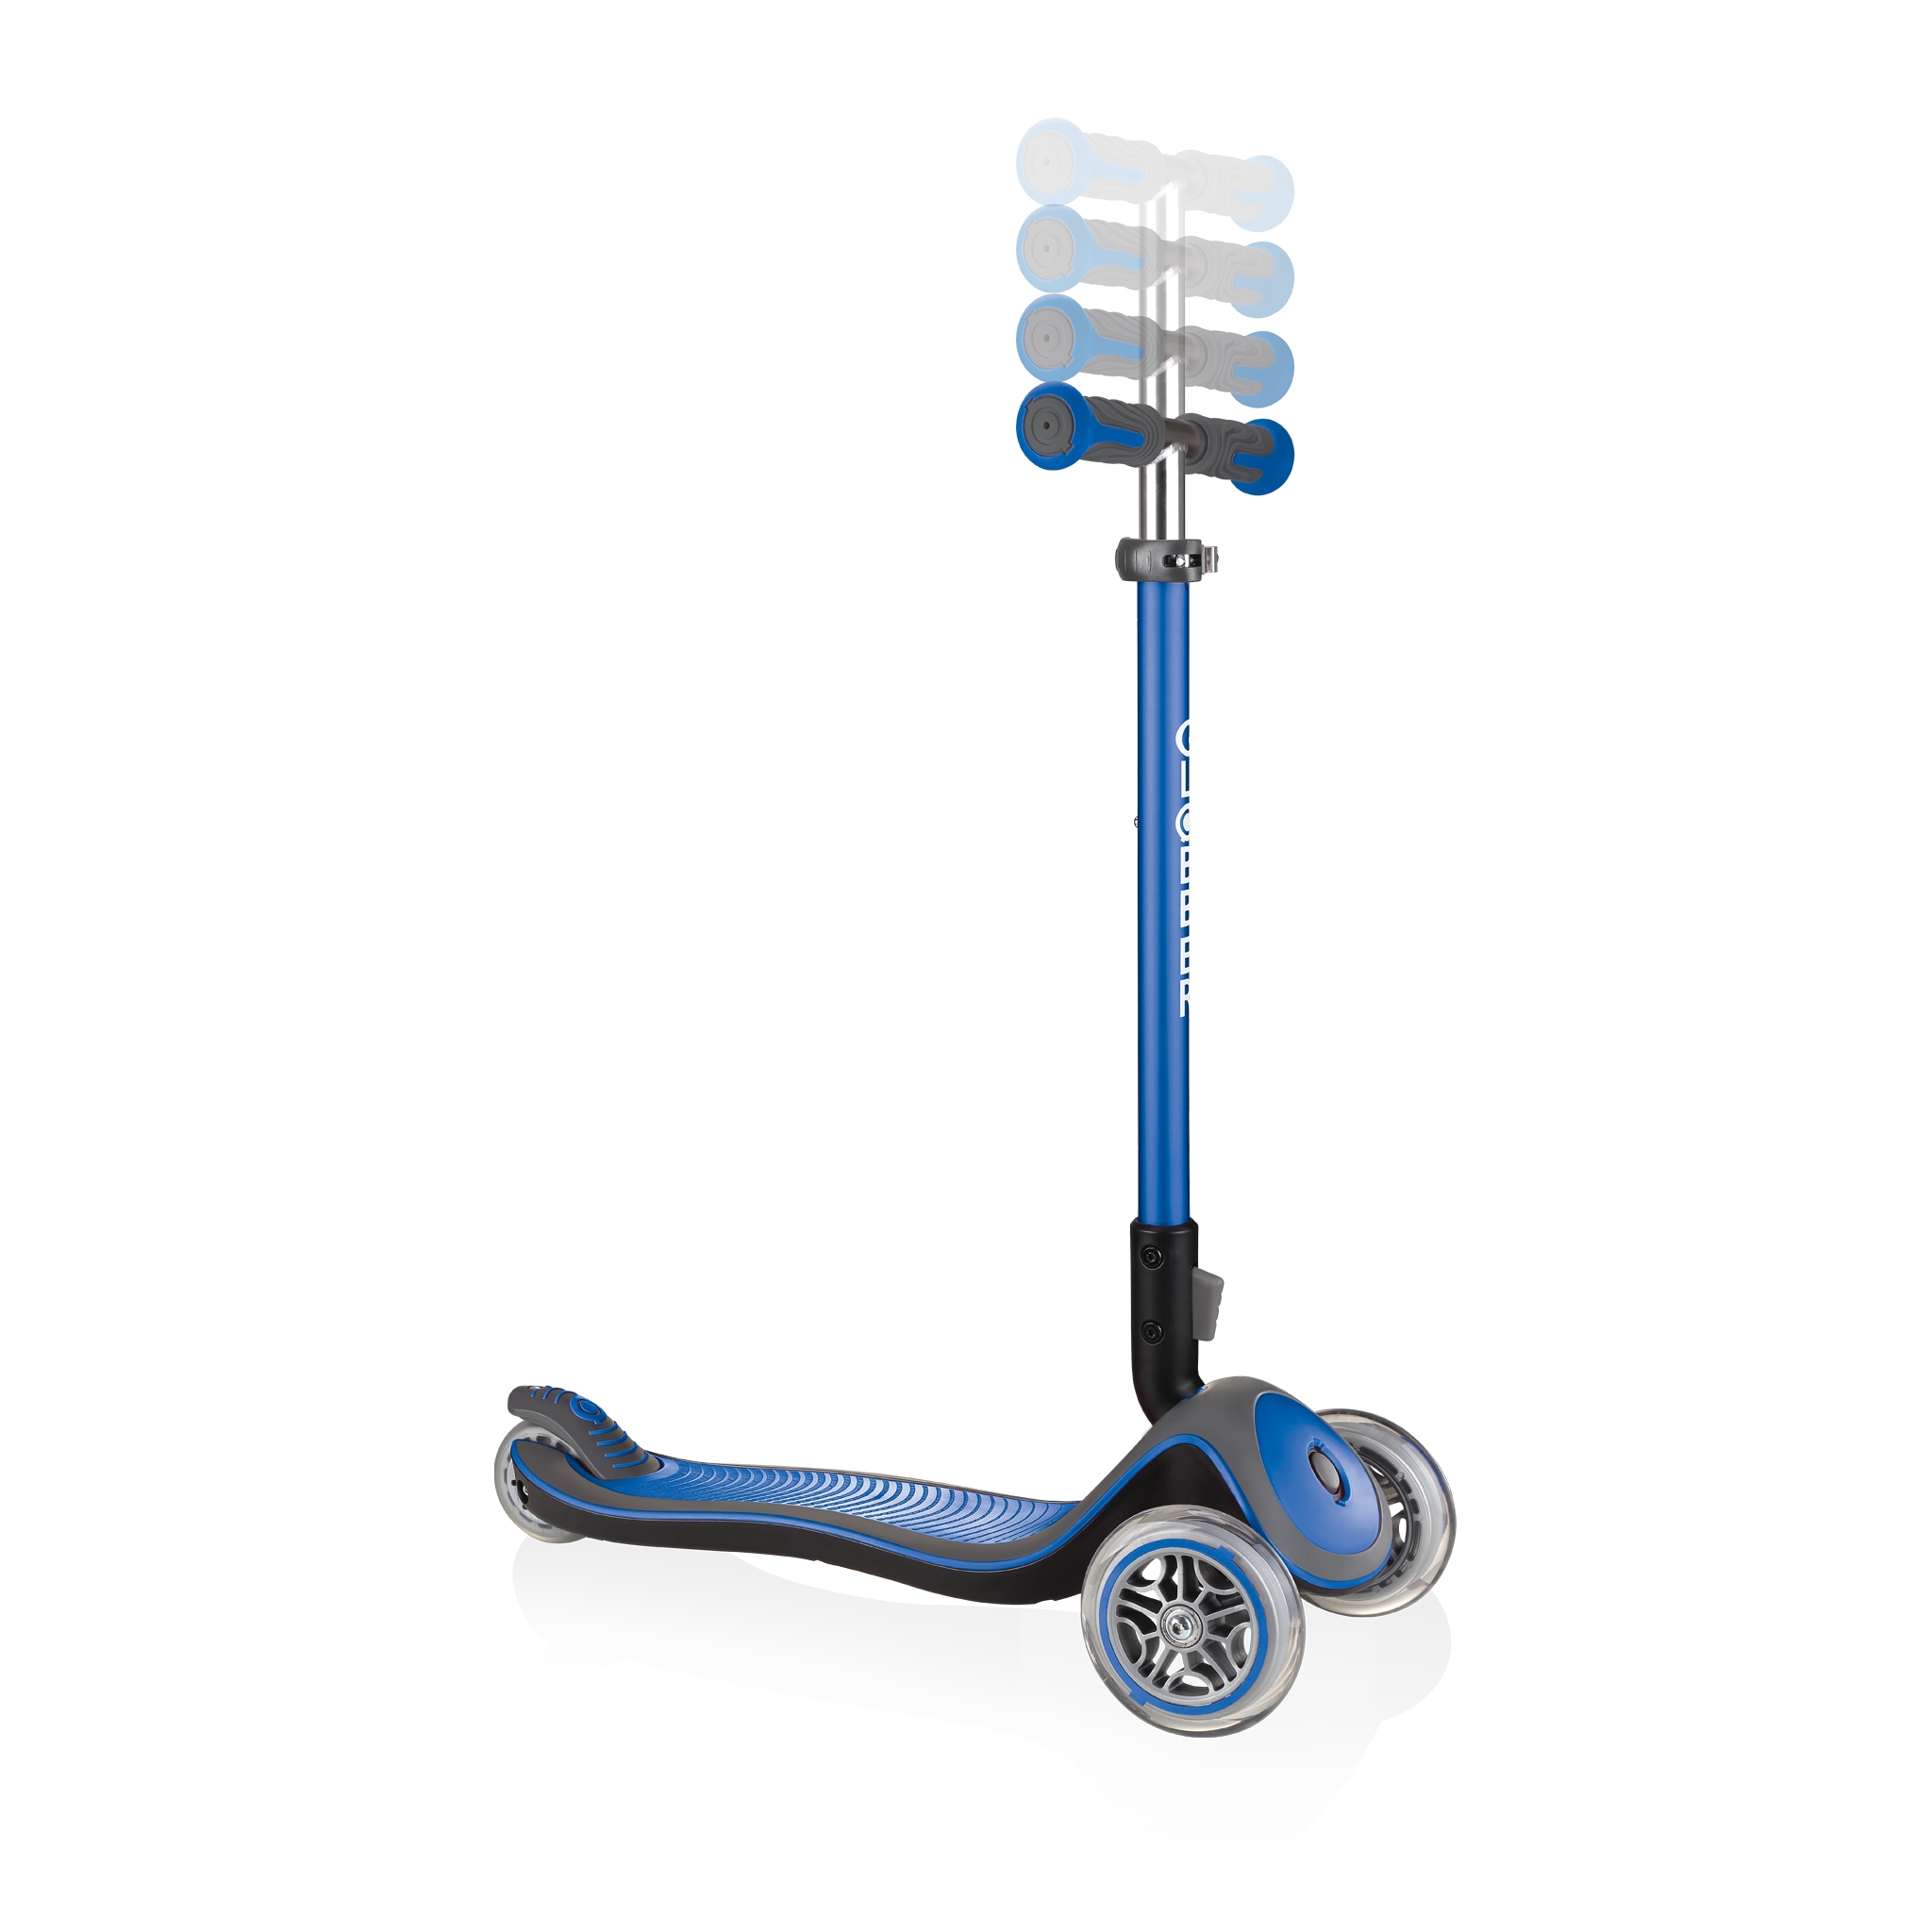 Globber-ELITE-DELUXE-3-wheel-adjustable-scooter-for-kids-with-anodized-T-bar-navy-blue 1